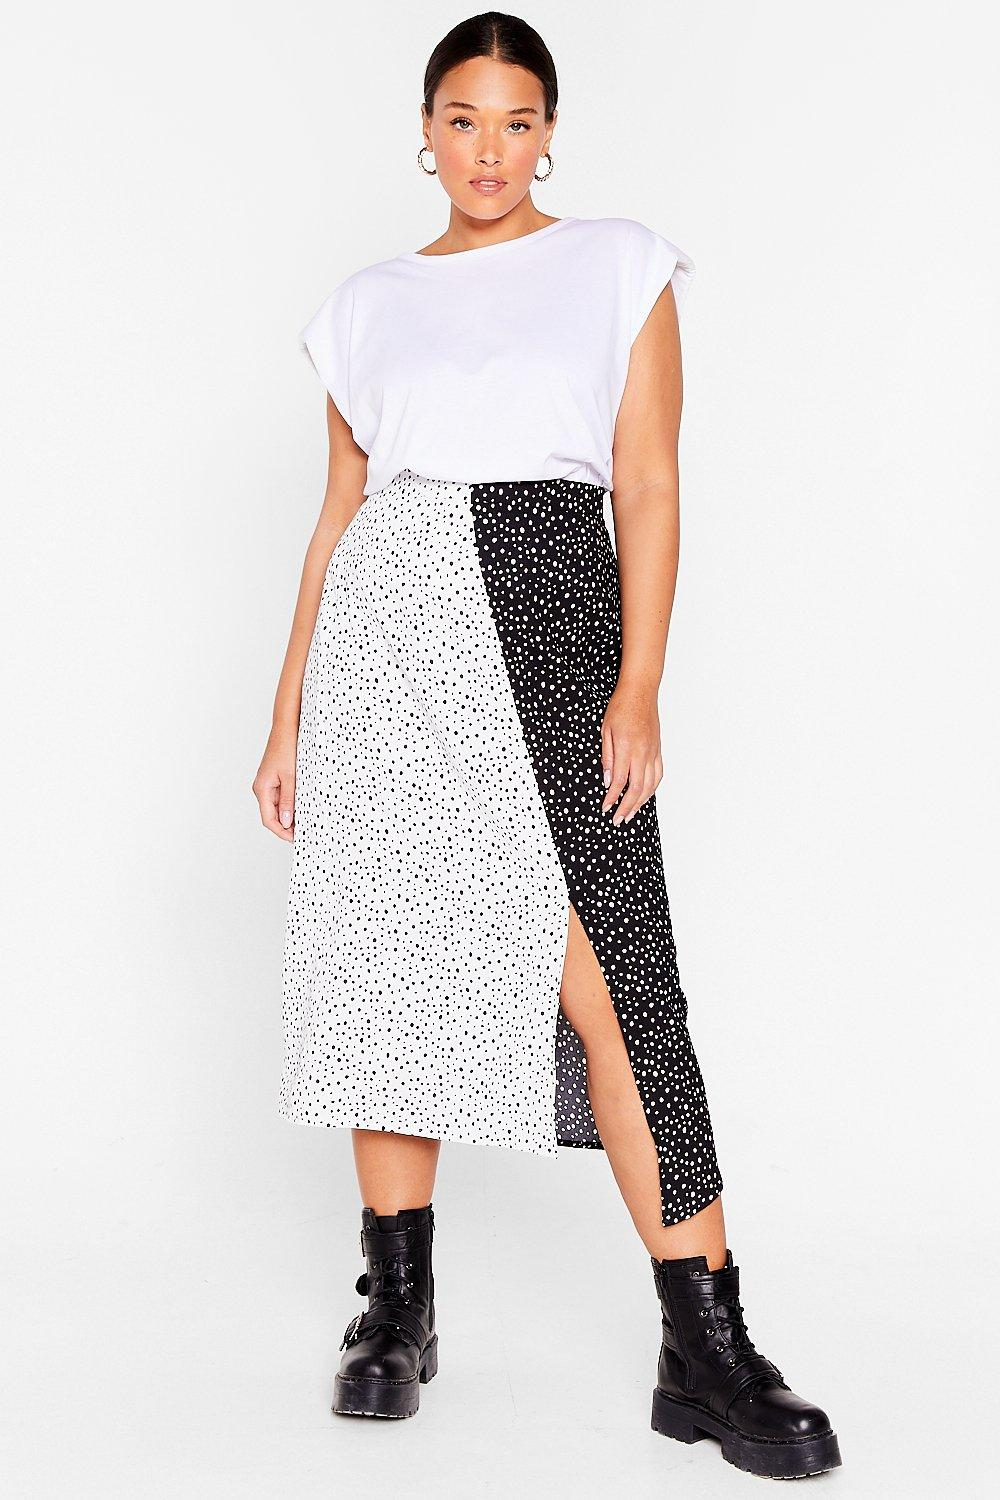 There's Been a Mix Up Plus Spotty Midi Skirt 8